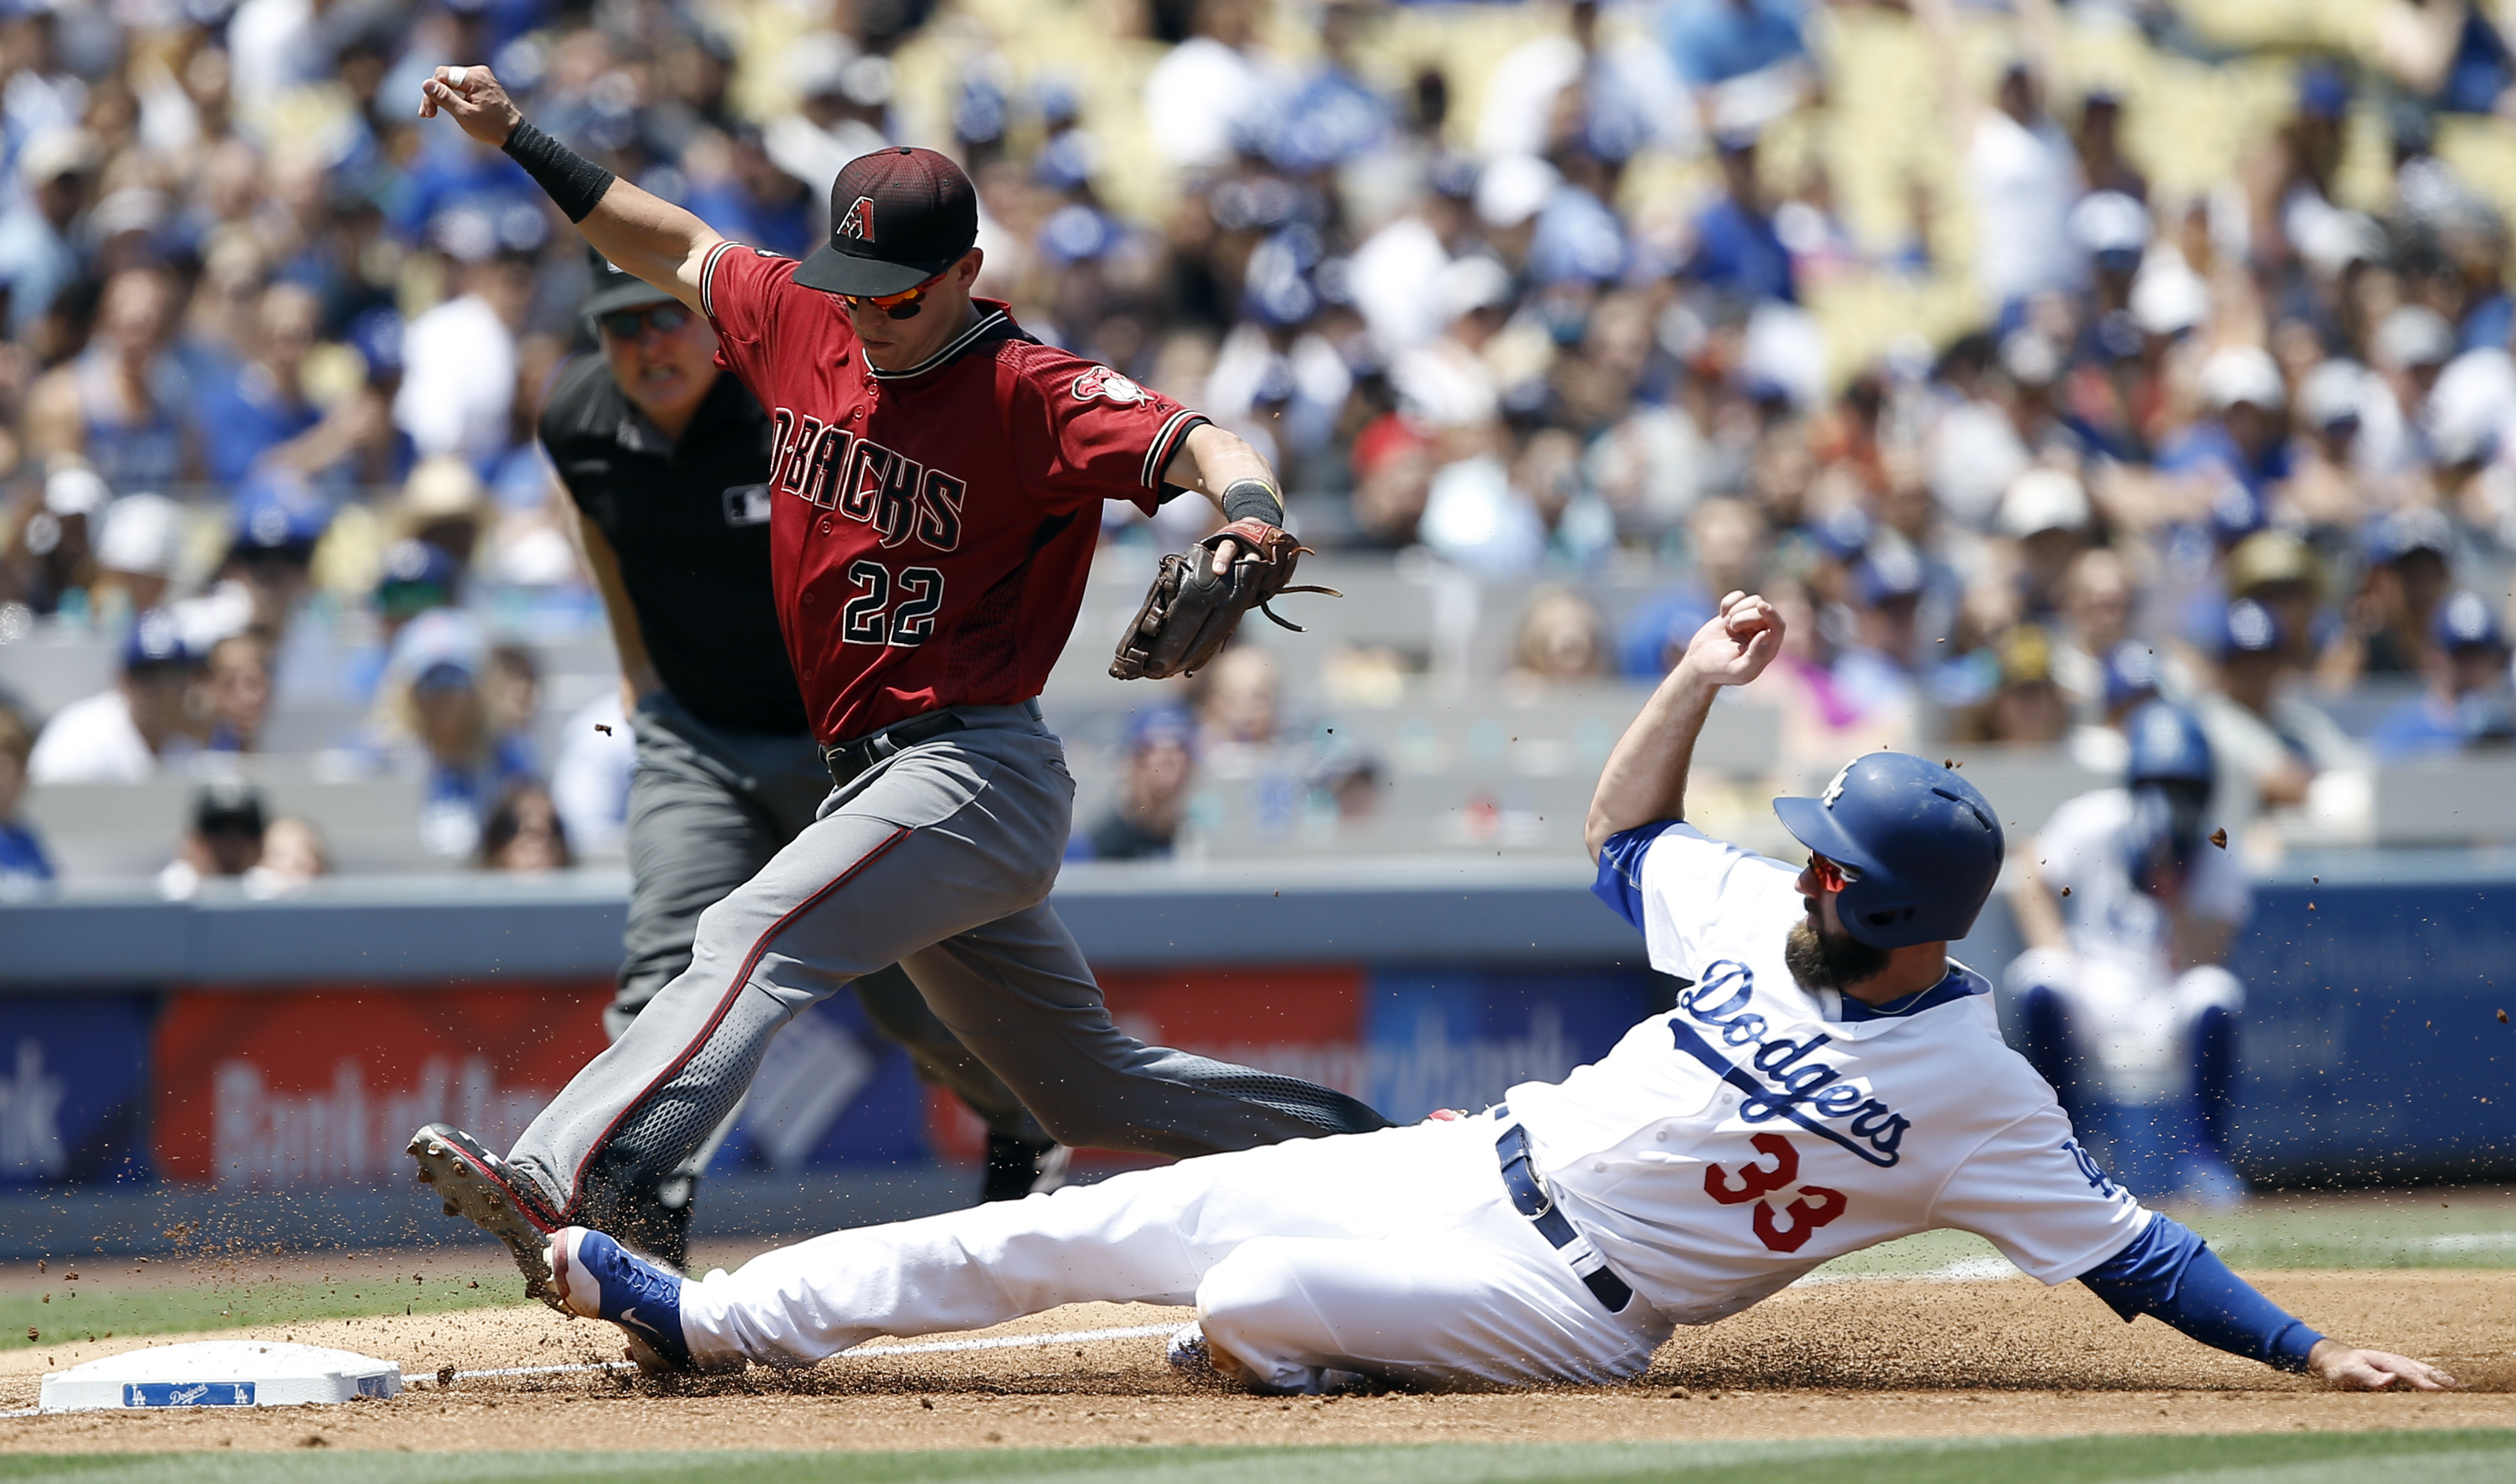 Arizona Diamondbacks third baseman Jake Lamb (22) races to beat Los Angeles Dodgers' Scott Van Slyke (33) to third for the out during the first inning of a baseball game in Los Angeles, Sunday, July 31, 2016. (AP Photo/Alex Gallardo)